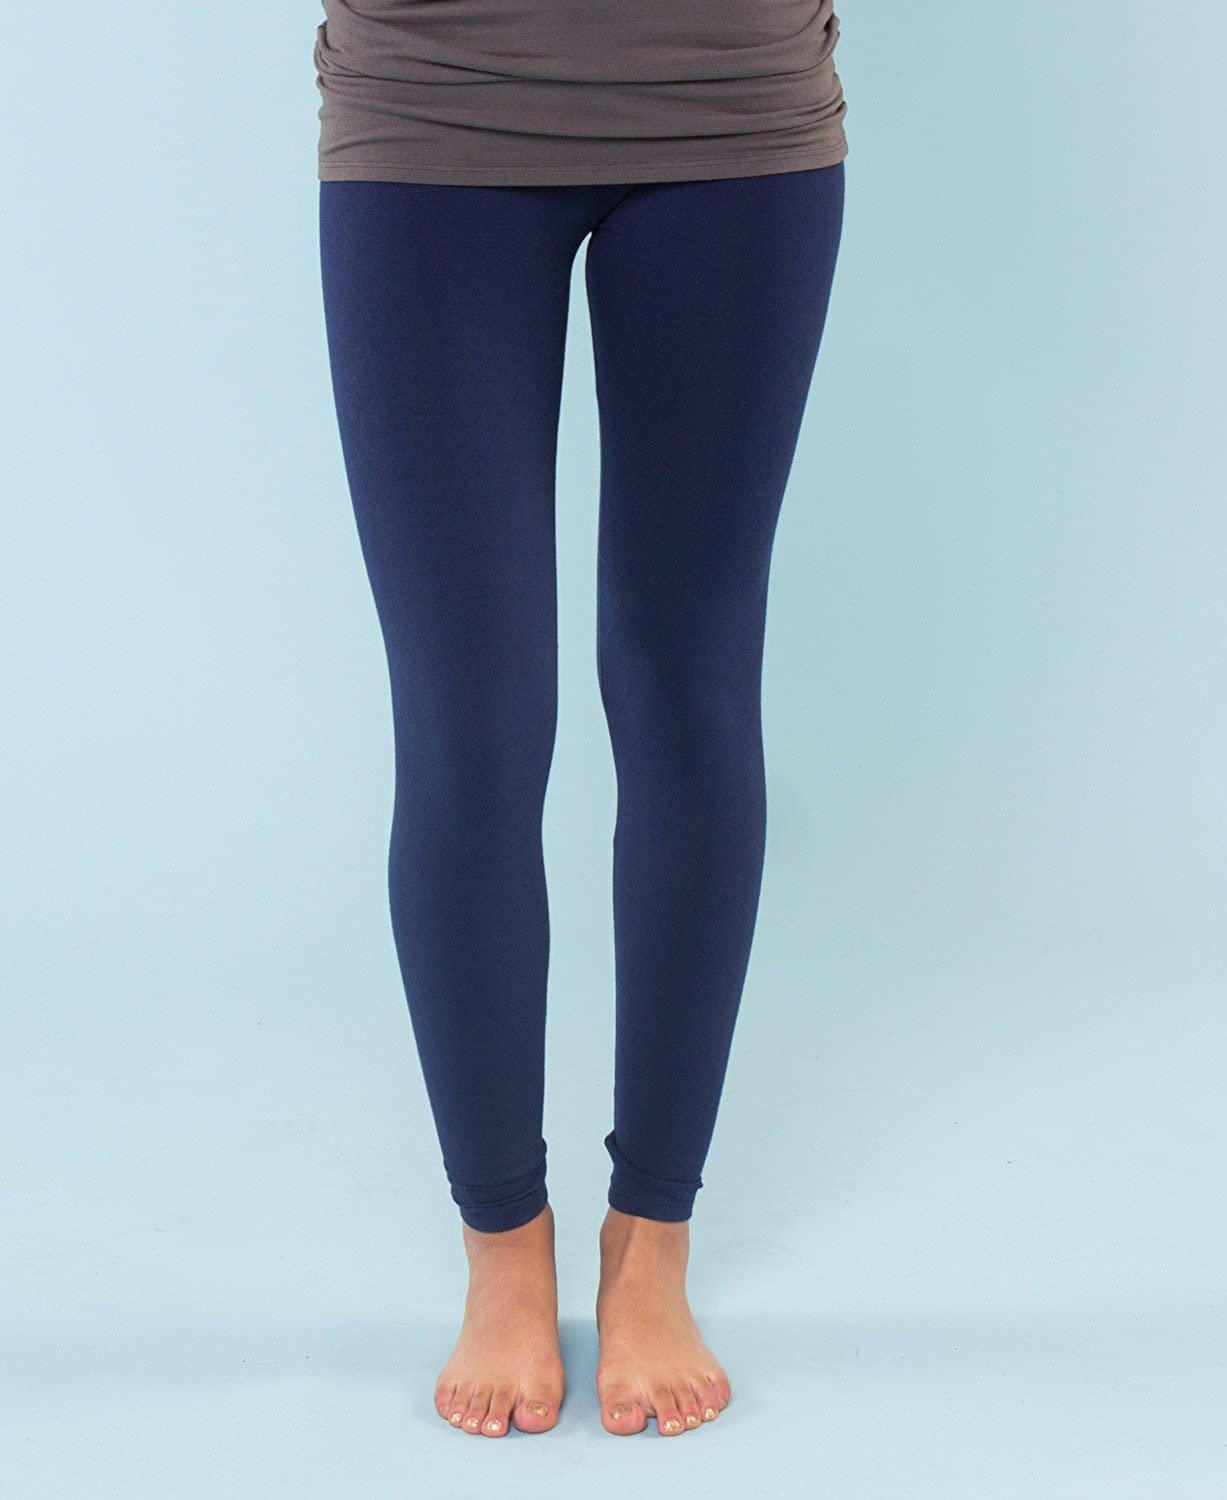 Ladies Full Length Fitted Yoga Pants Womens Organic Cotton Leggings Stretchy Solid Color Long Basic Bottoms